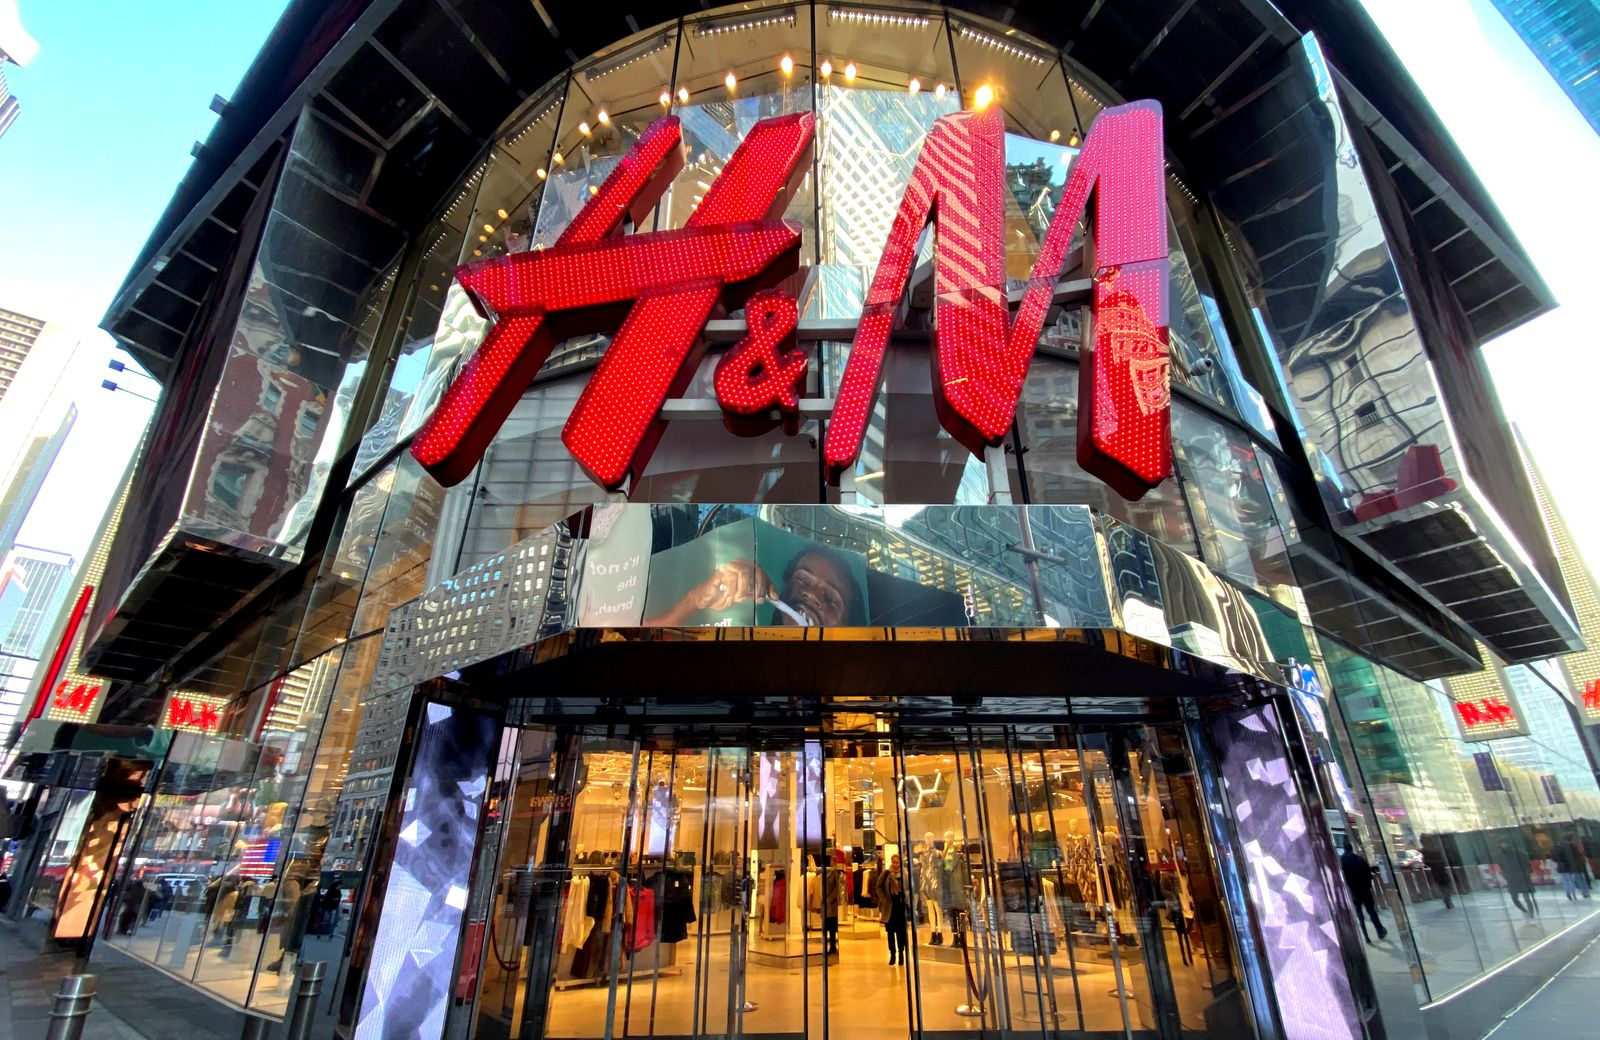 FILE PHOTO: The H&M clothing store is seen in Times Square in Manhattan in New York